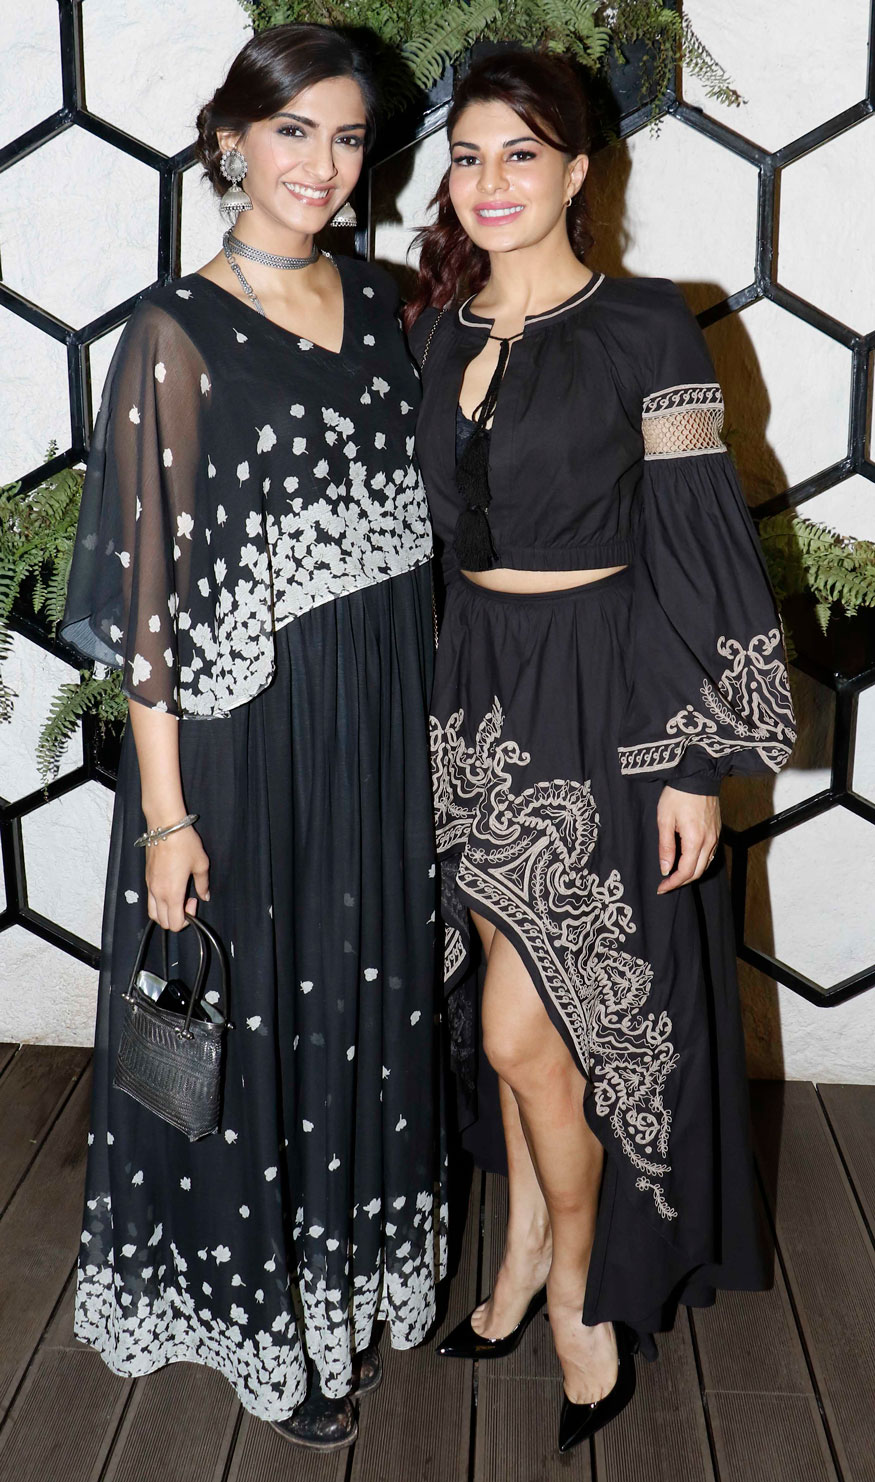 Sonam Kapoor and Jacqueline Fernandez pose for photographers upon arrival at the opening of restaurant 'Arth' designed by Gauri Khan. (Image: Yogen Shah)